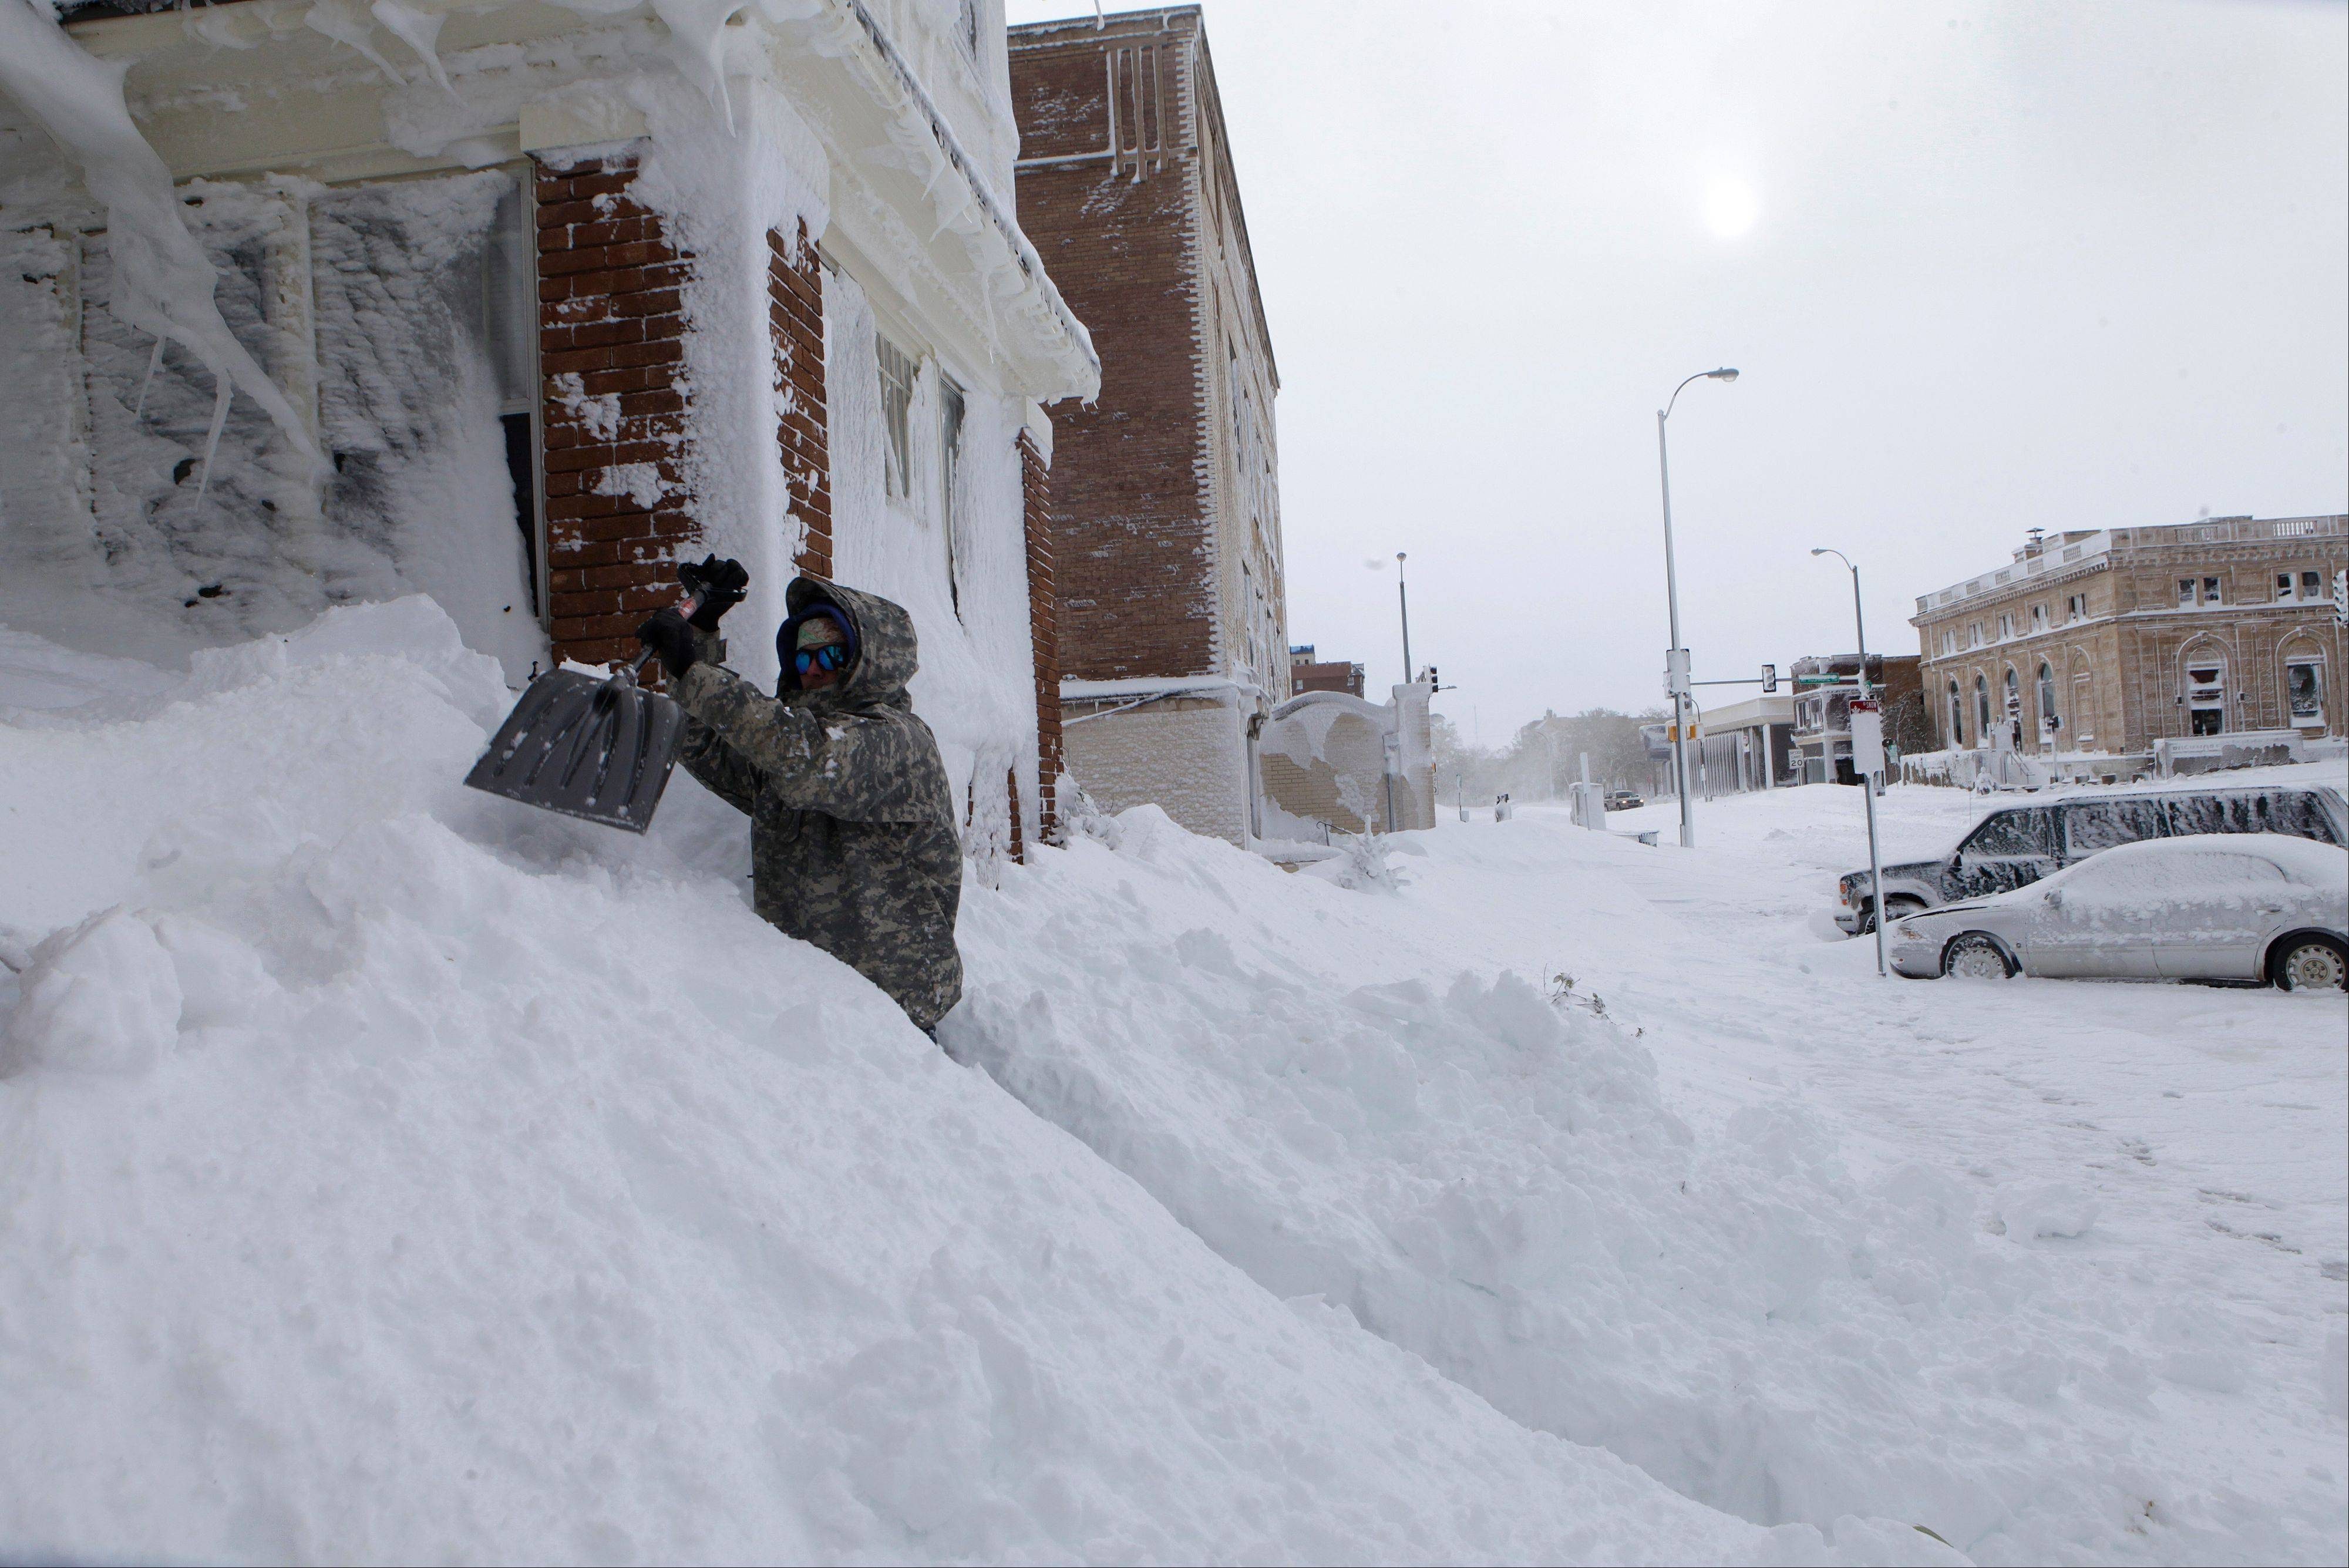 Chad Hoffman clears snow from the entrance to his apartment building in Rapid City, S.D,, Saturday. A storm dumped at least three and a half feet of wet, heavy snow in the Black Hills. Rapid City had 21 inches, but 31 inches were recorded just a mile southwest of the city.